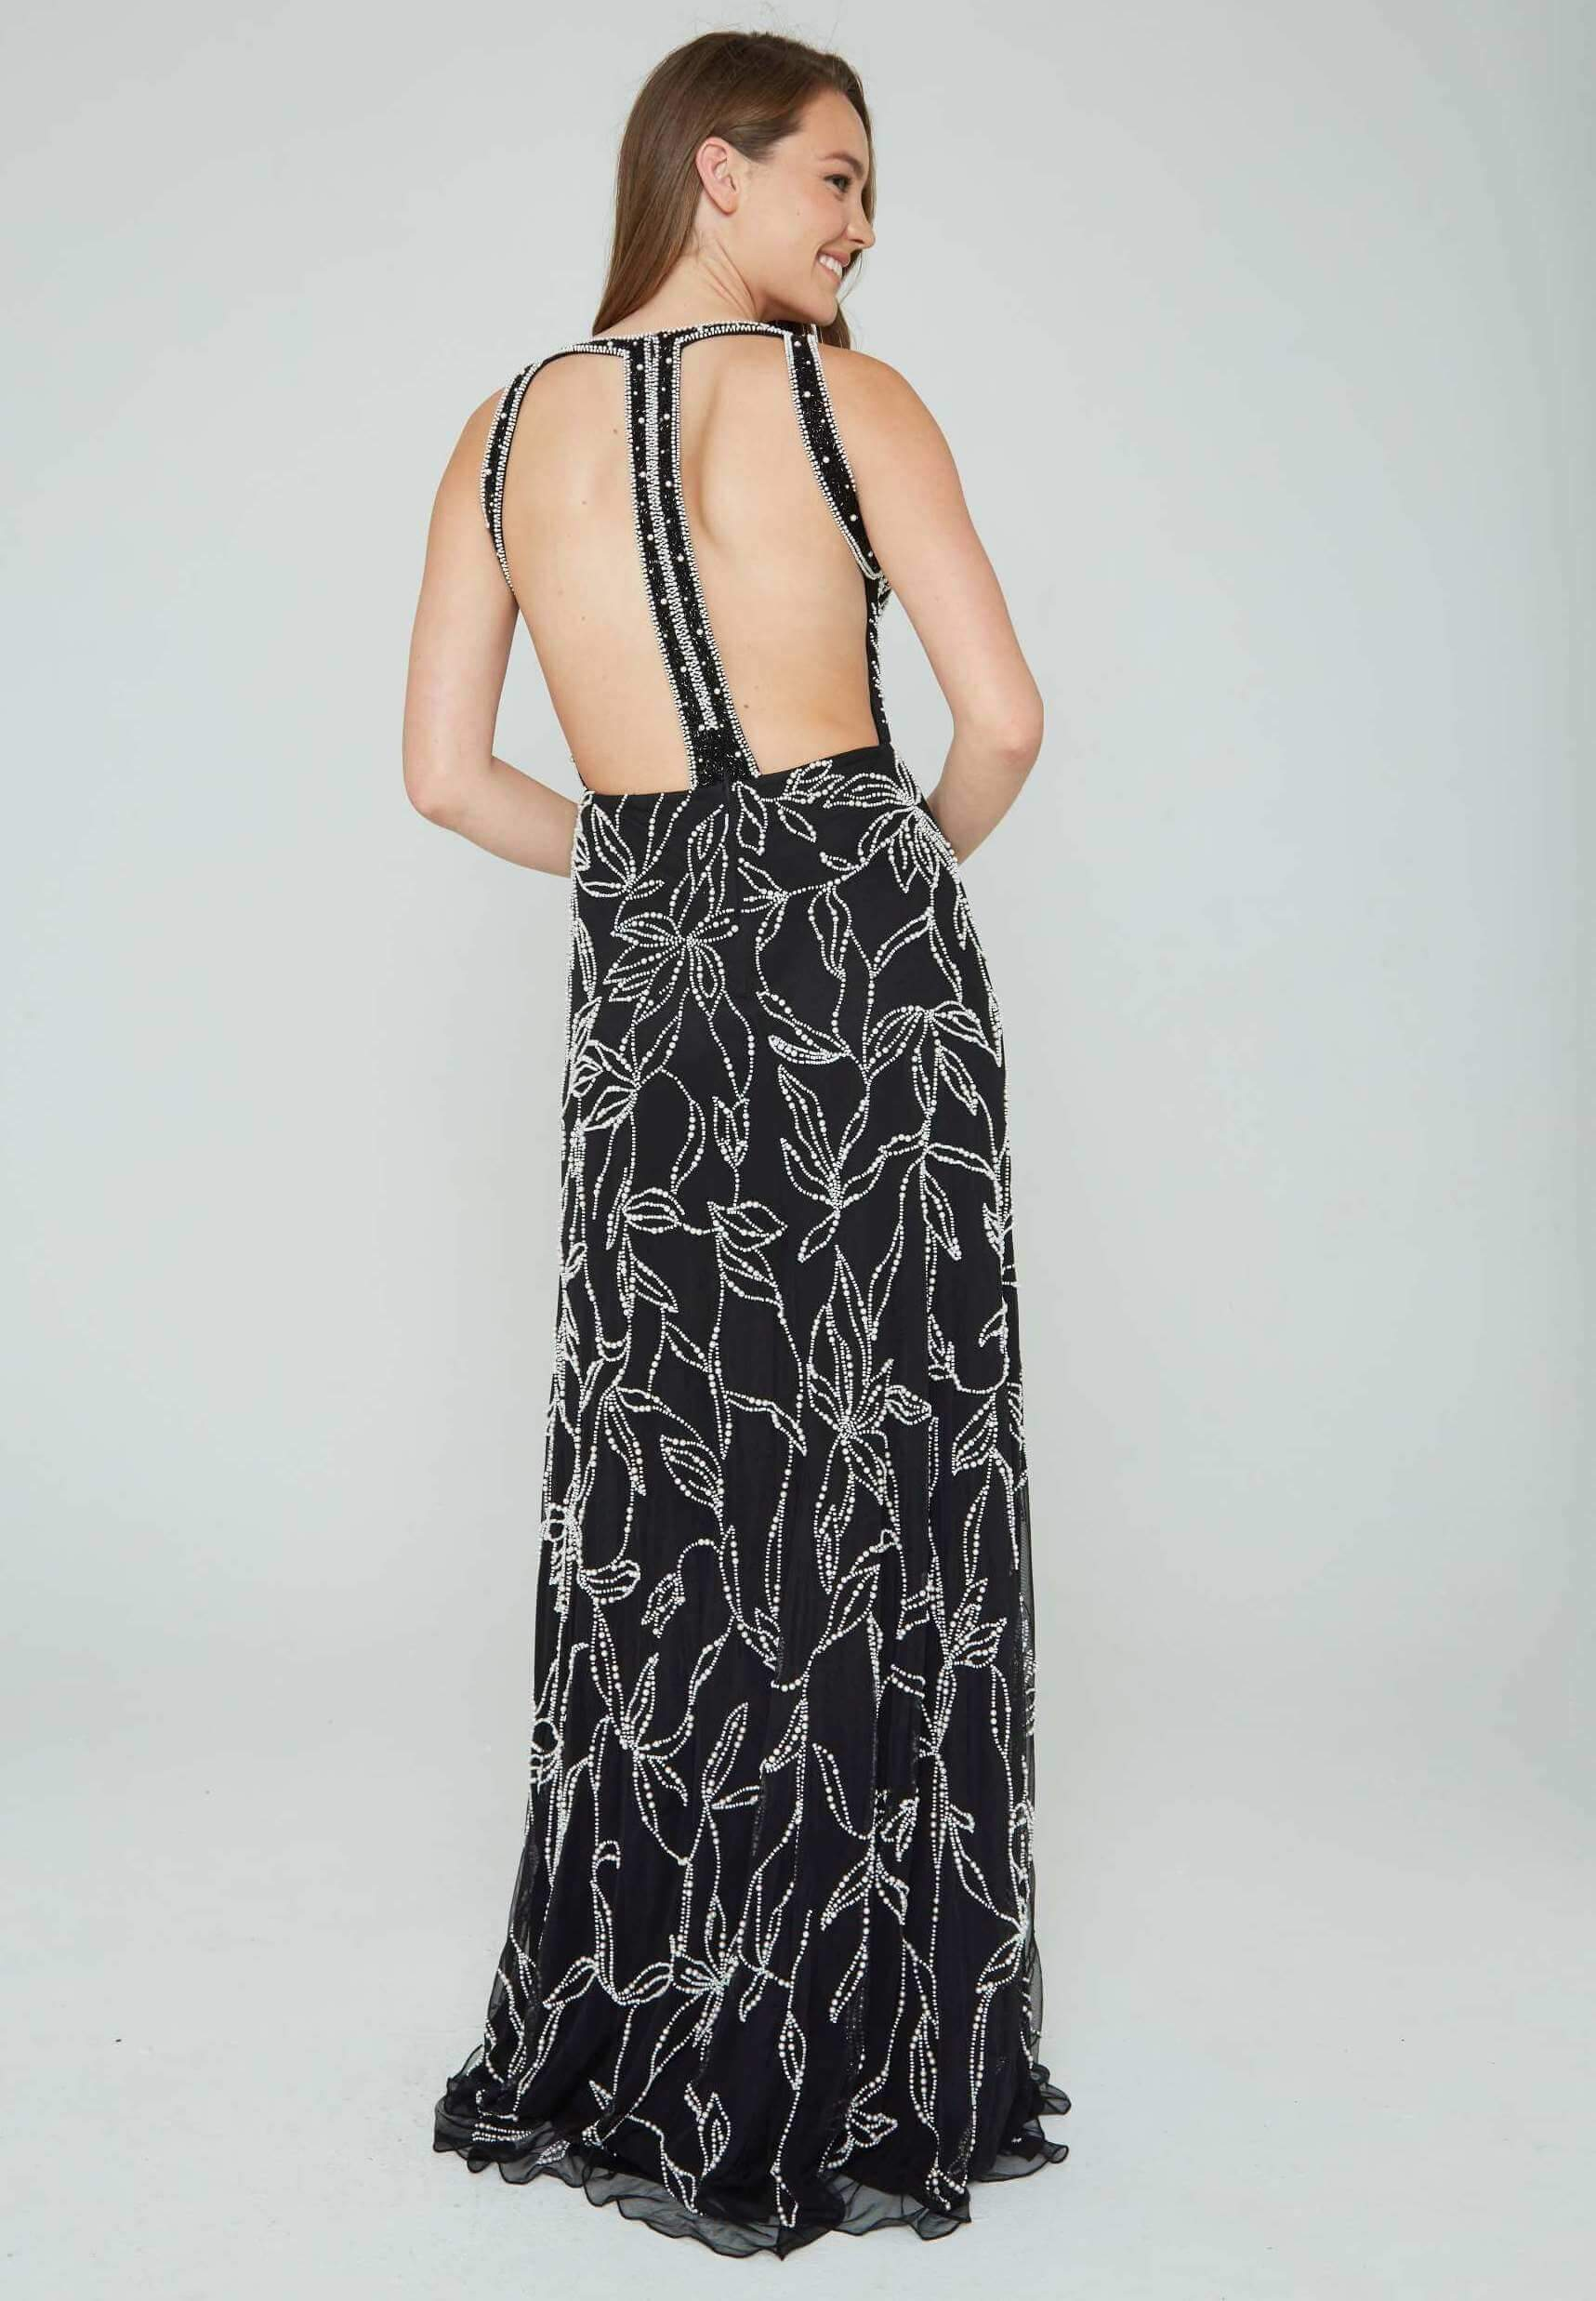 Style 165 Aleta Black Size 0 Plunge Backless Tall Height Straight Dress on Queenly